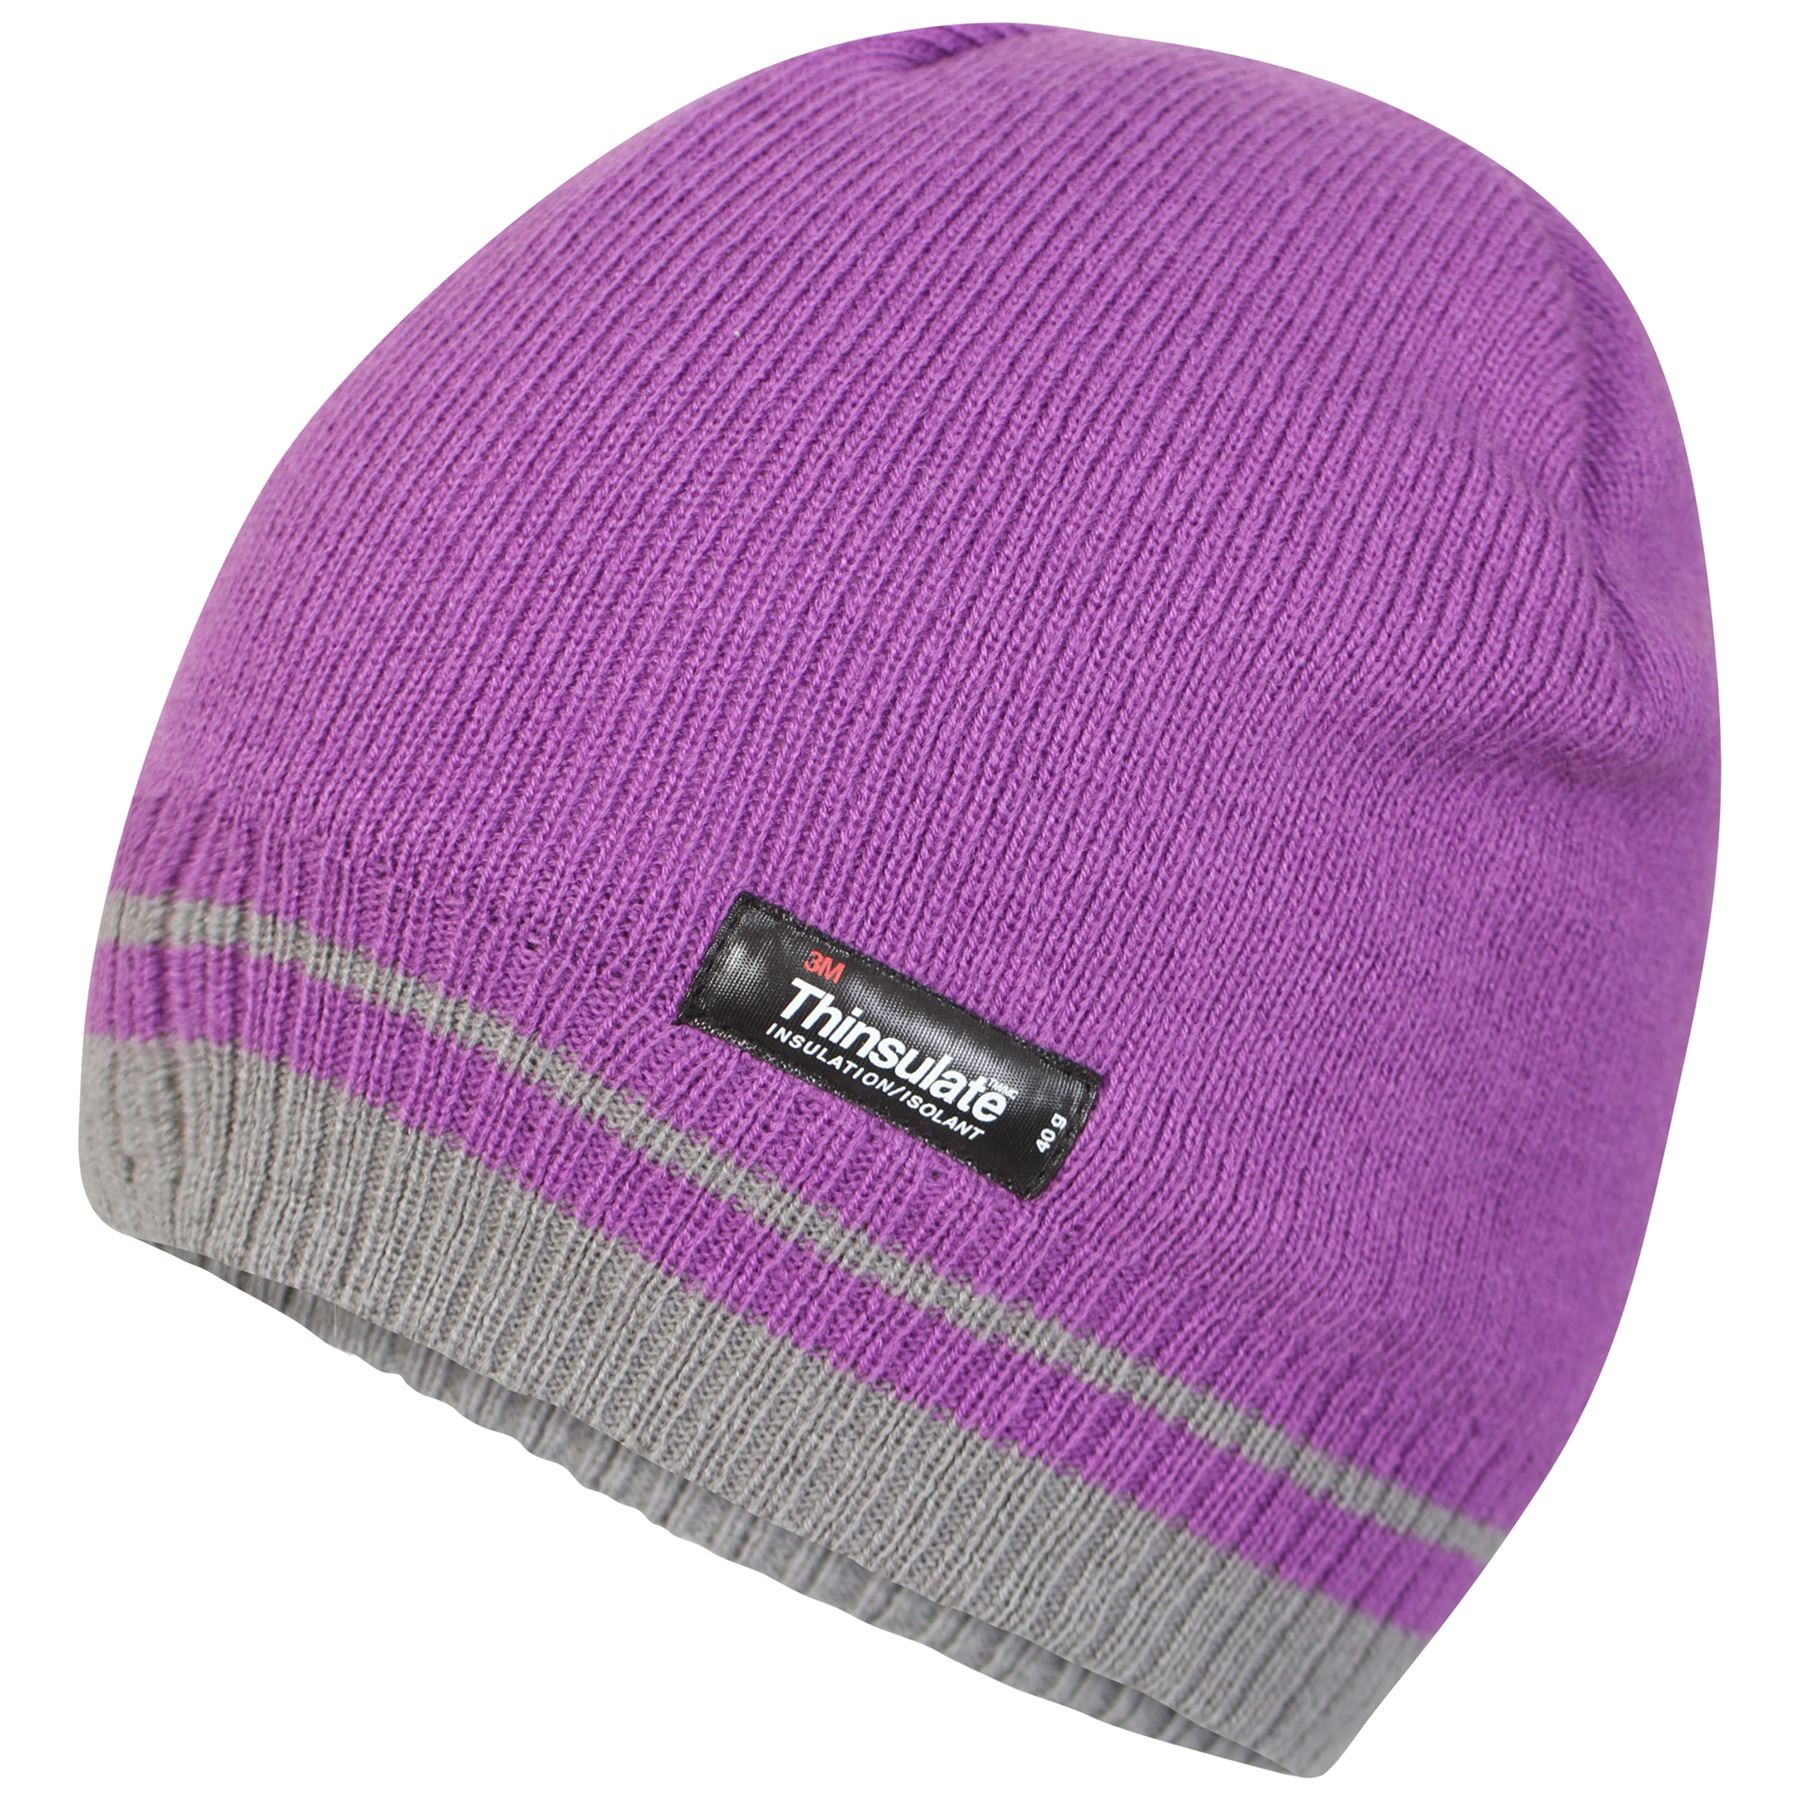 2162038d2de74 Pro Climate Womens Hat Ladies Thinsulate Striped Beanie One Size ...